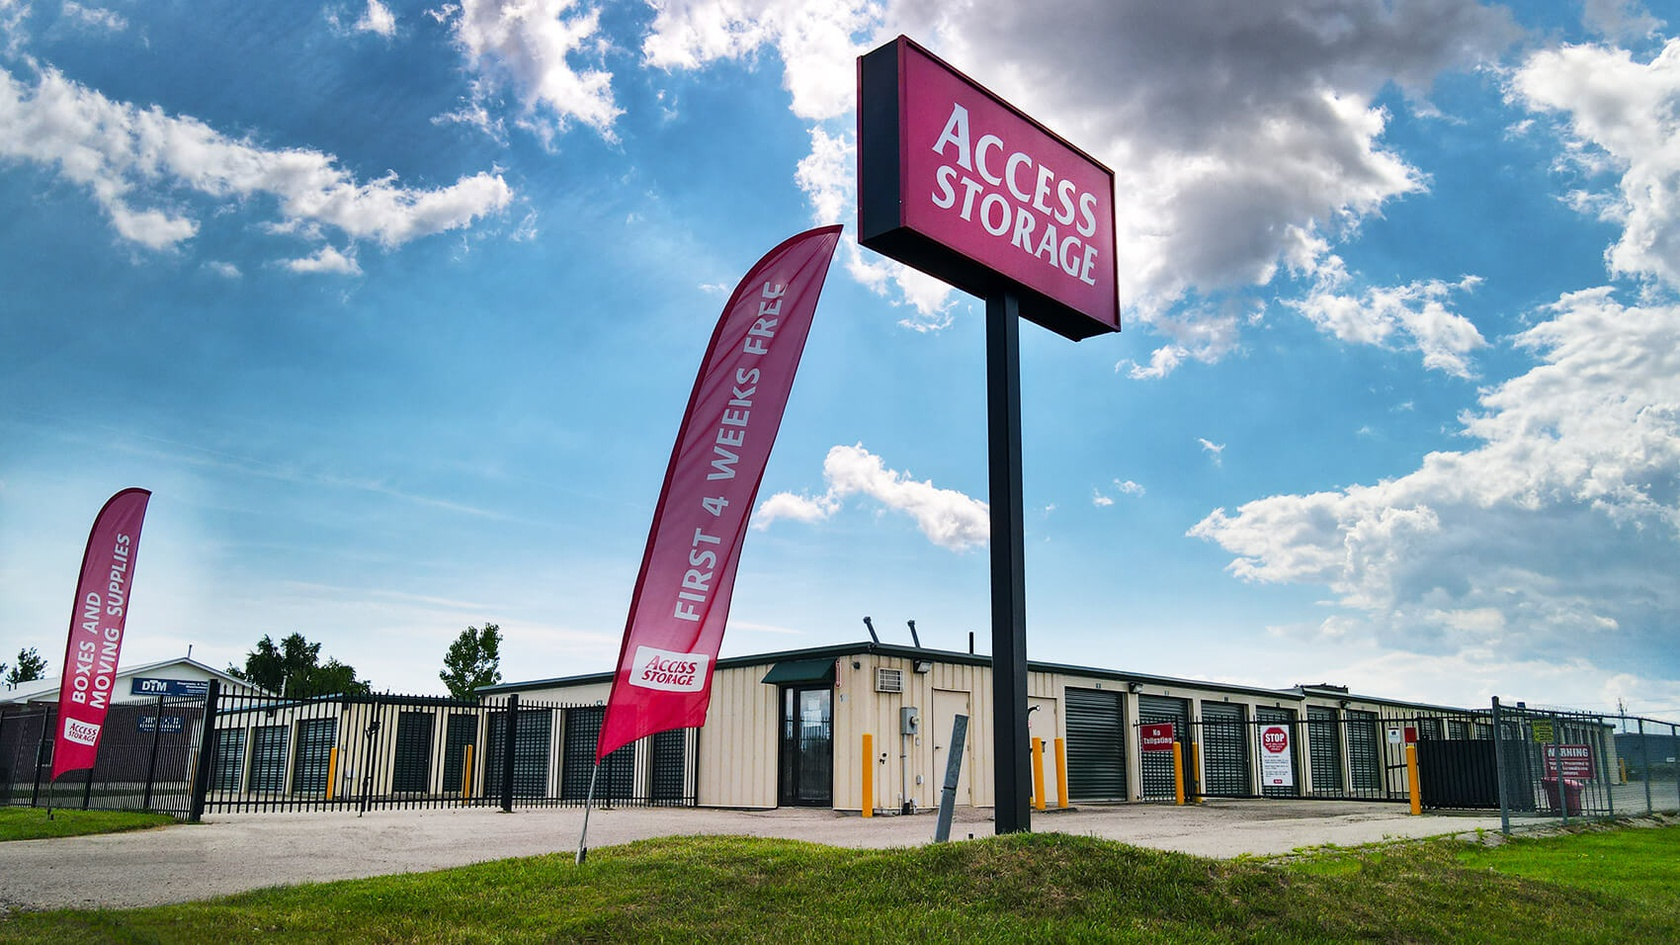 Rent St. Thomas storage units at 101 Harper Road. We offer a wide-range of affordable self storage units and your first 4 weeks are free!